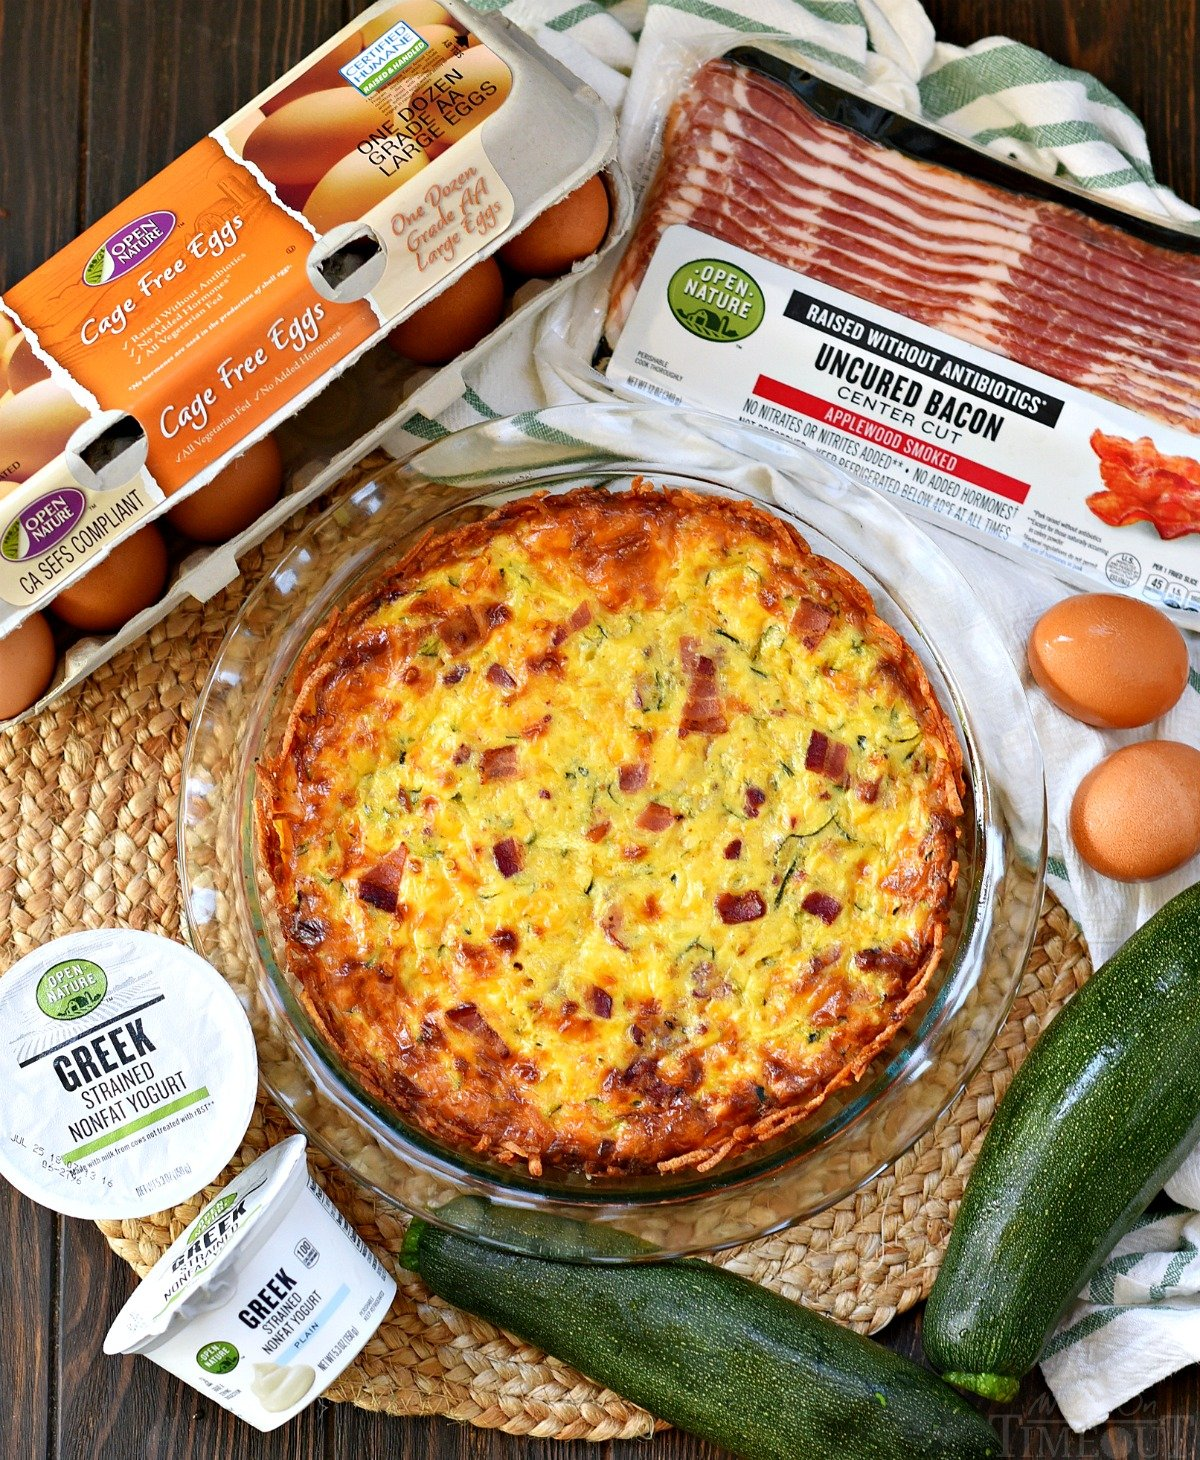 zucchini-bacon-quiche-ingredients